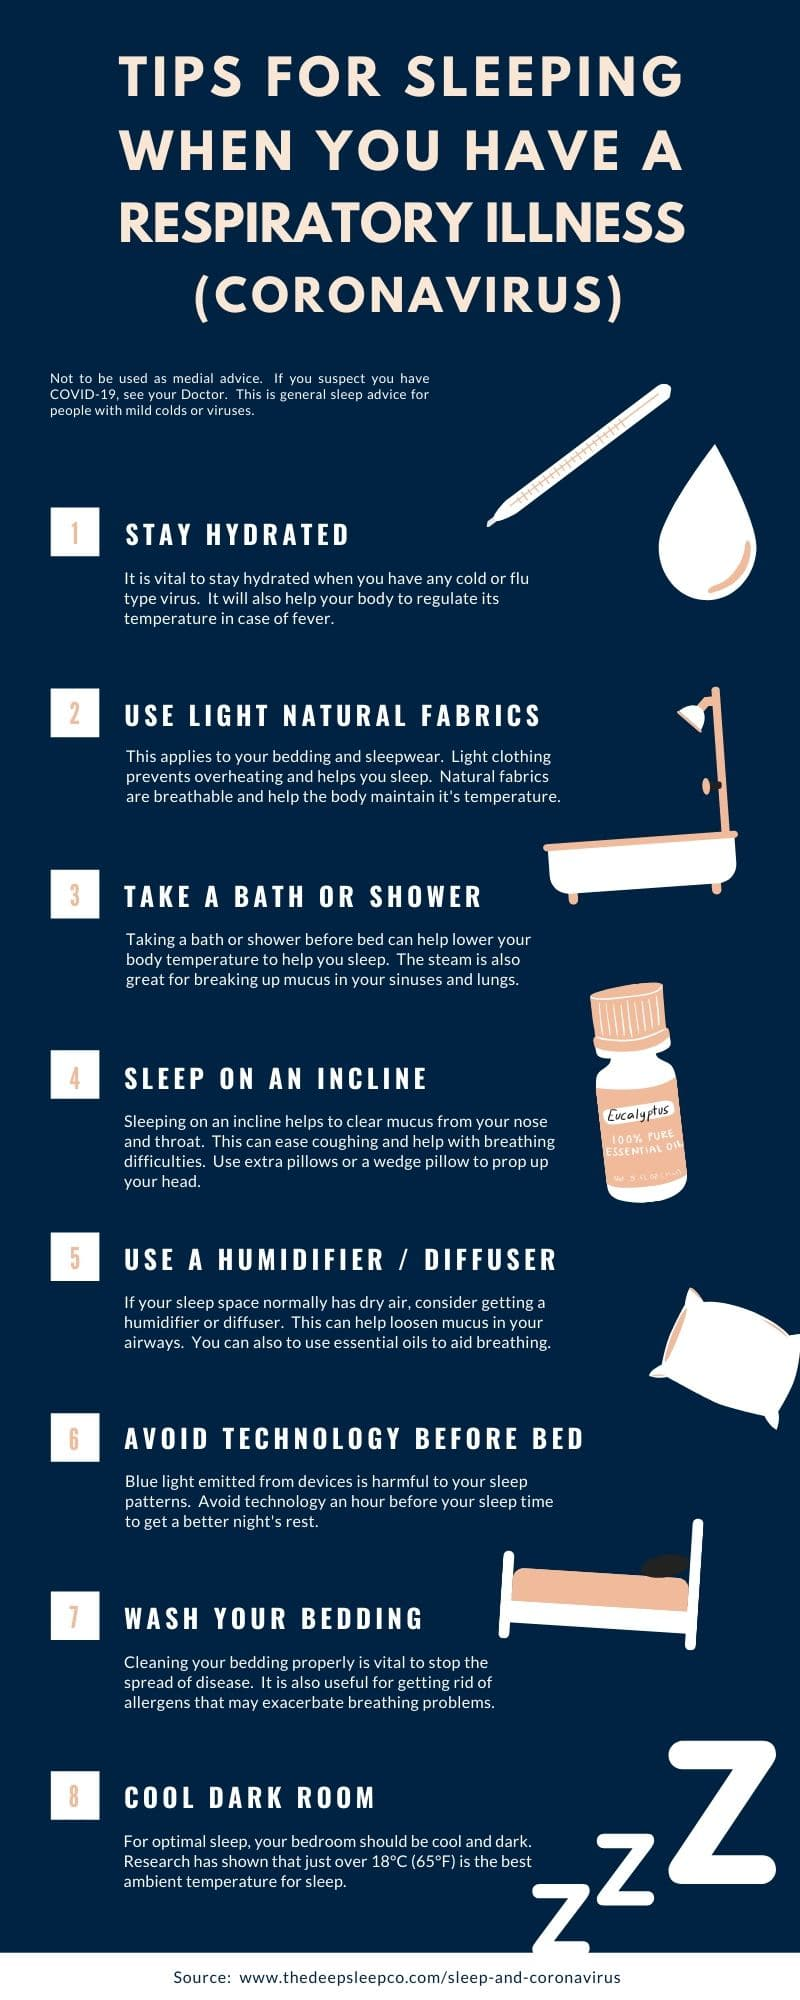 Tips for getting sleep when you have a respiratory illness